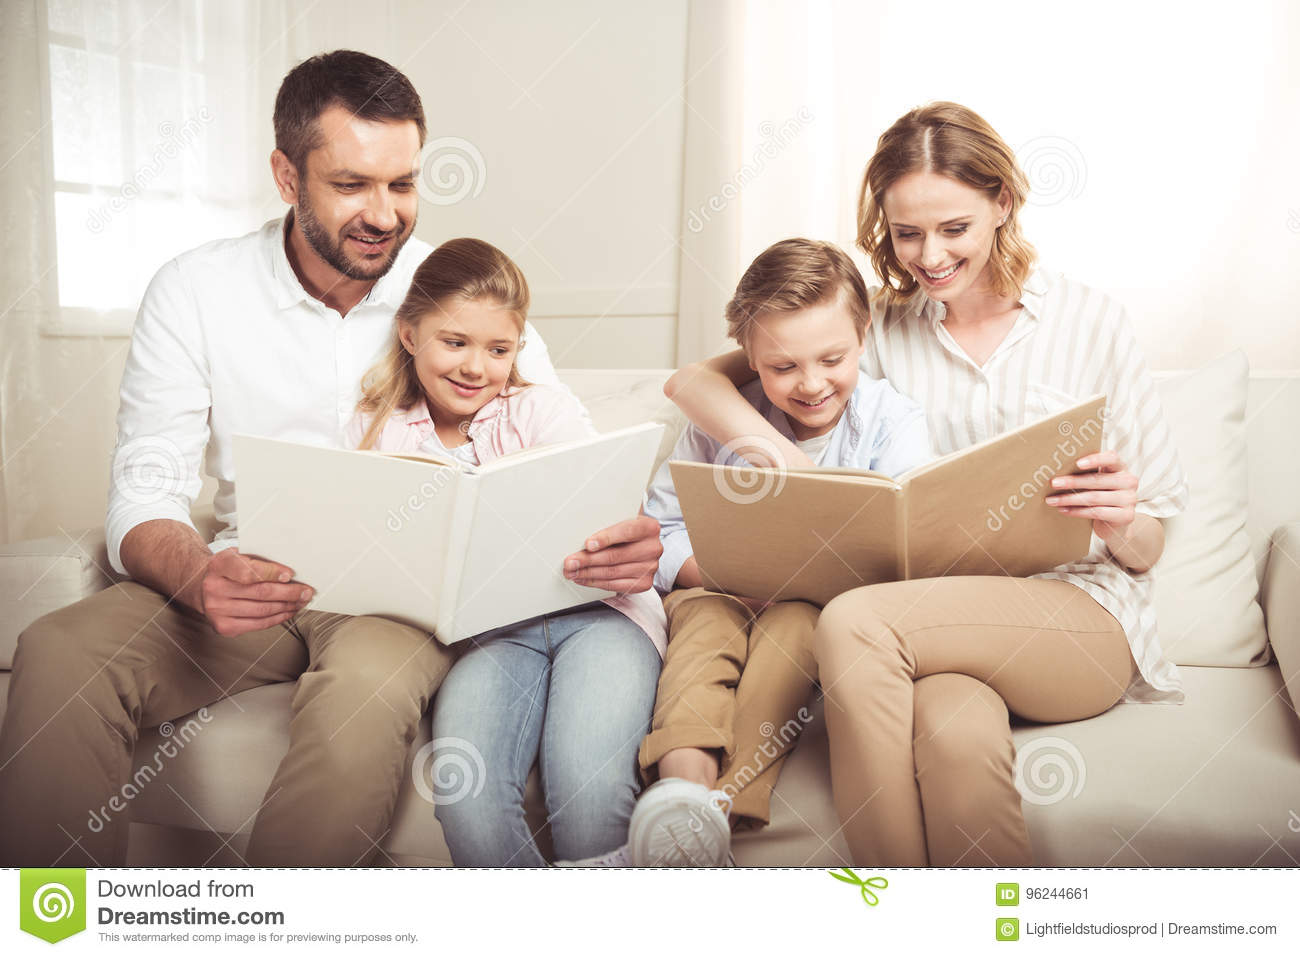 Download Family With Two Adorable Children Sitting Together And Reading Books At Home Stock Image - Image of reading, people: 96244661